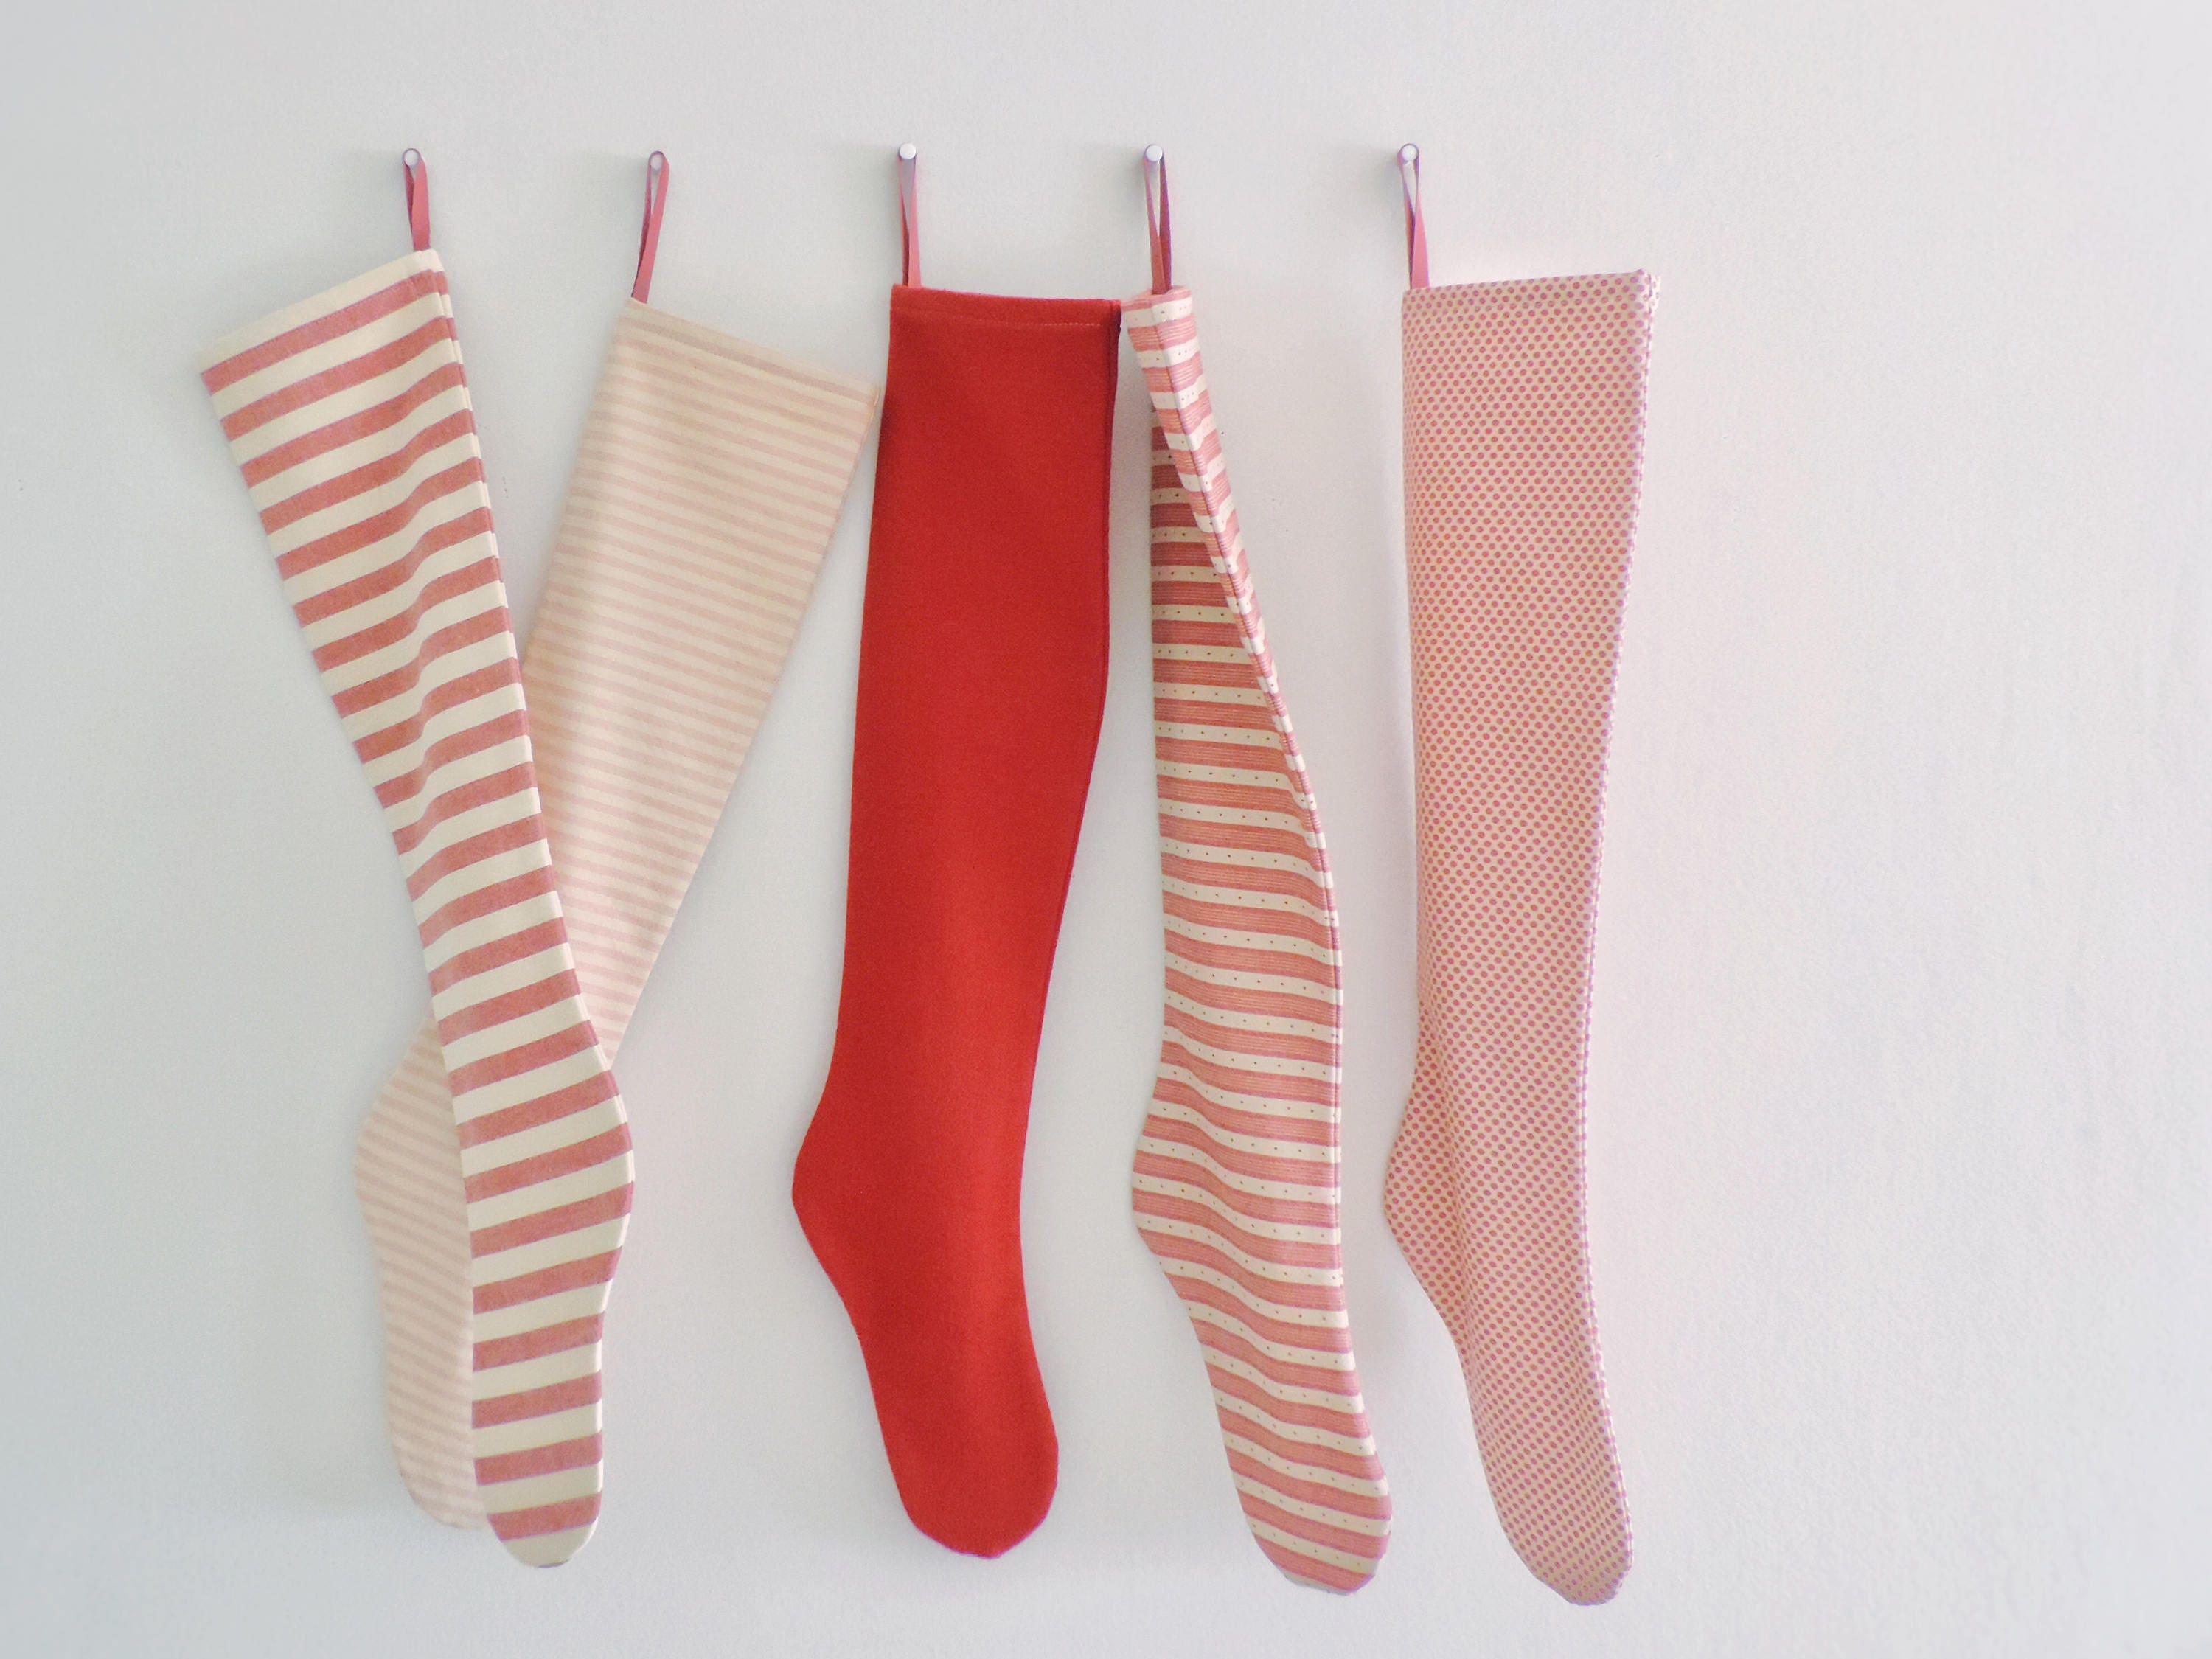 christmas stocking personalized modern scandinavian red striped personalized christmas stocking family holiday stockings long decoration - Striped Christmas Stockings